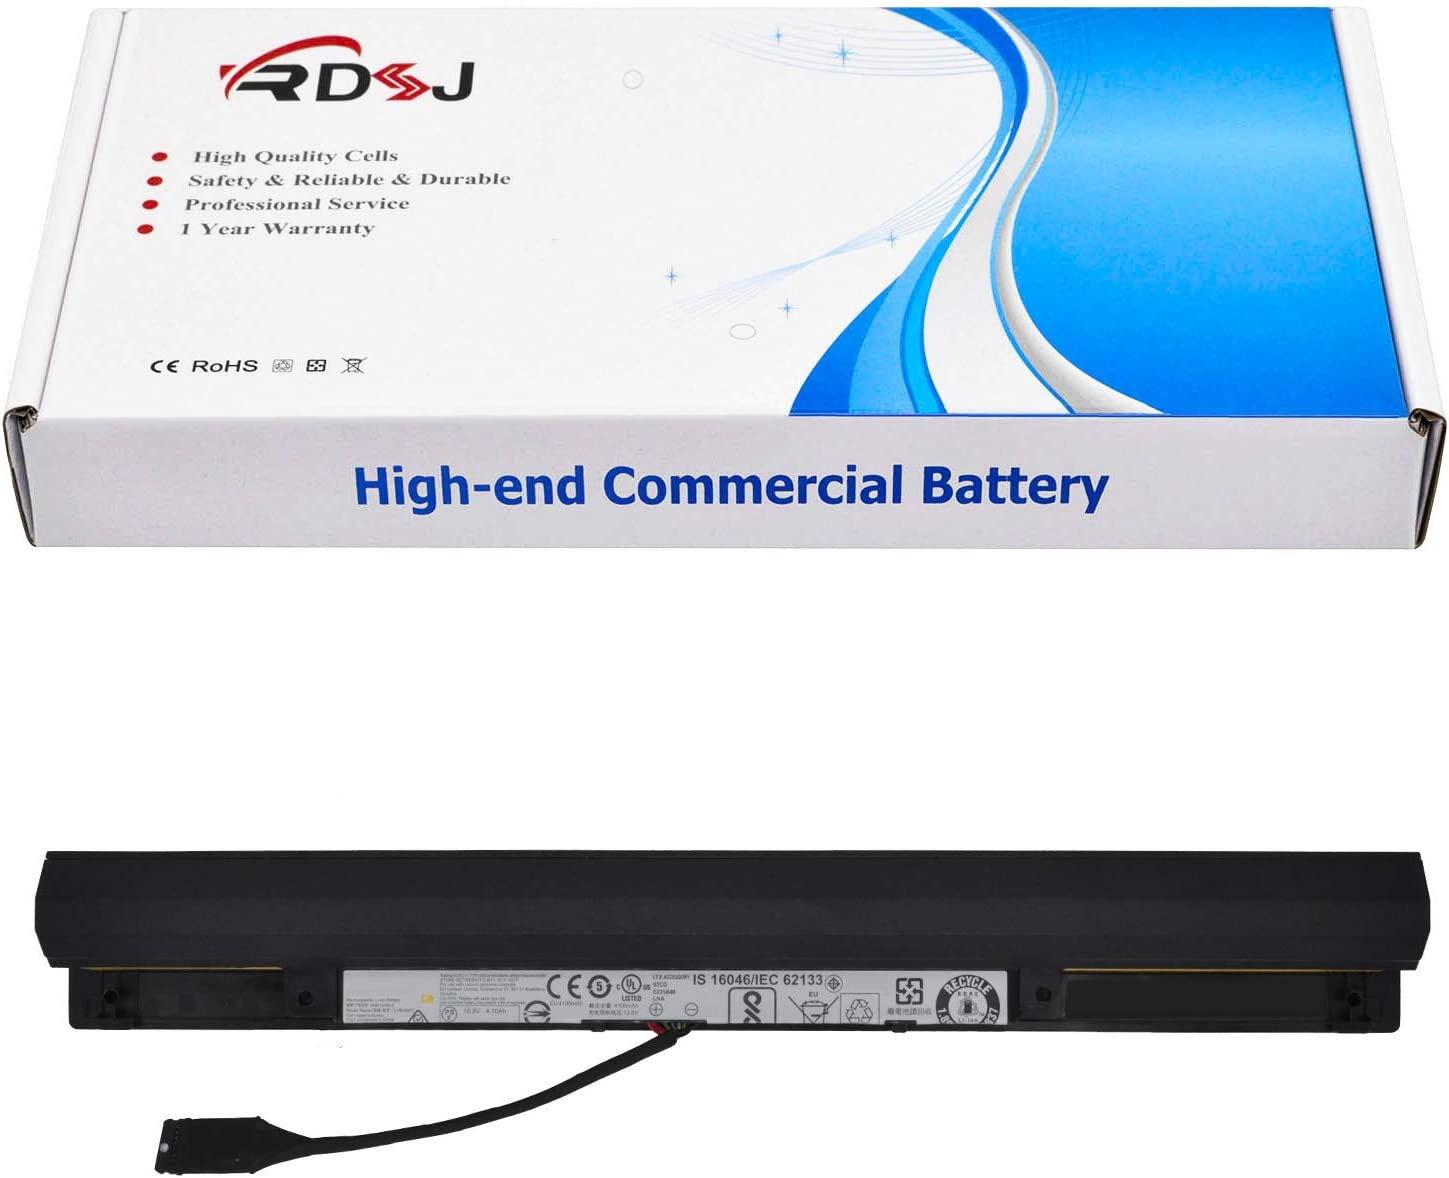 L15L6A01 L15S6A01 Laptop Battery for Lenovo Ideapad 110-15ISK Series Tablet 3INR19/66-2 10.8V 48Wh 4400mAh